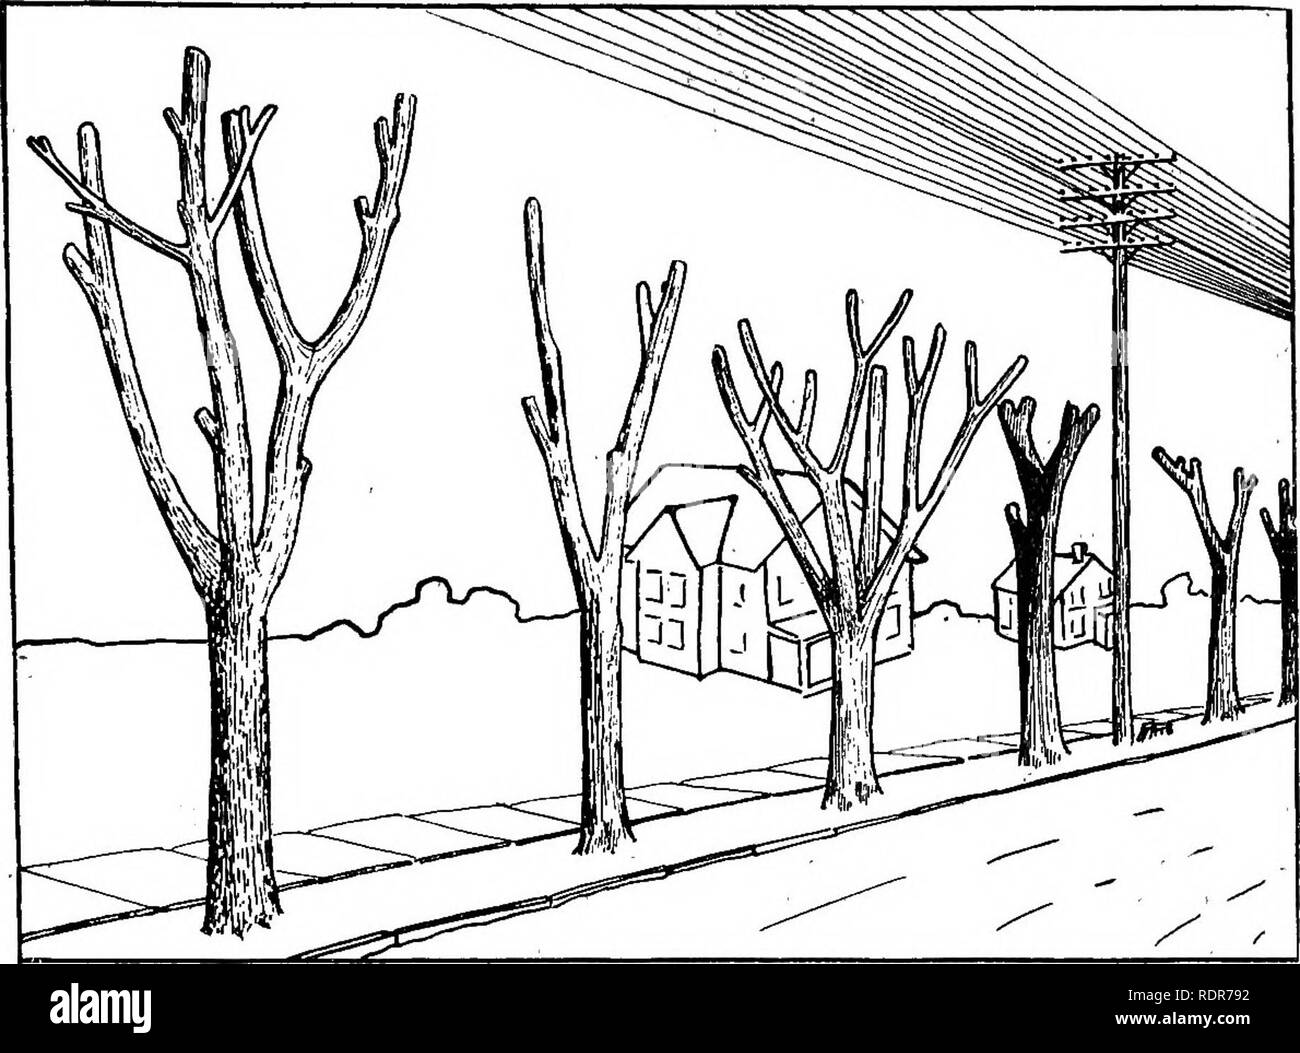 . A shade tree guide. Trees. STREET TREES. 19. Fig. .12, A Row of Old Trees Butchered to Make Room for High Wires. Compare With Fig. 13.. Please note that these images are extracted from scanned page images that may have been digitally enhanced for readability - coloration and appearance of these illustrations may not perfectly resemble the original work.. New Jersey. Dept. of Conservation and Development; Gaskill, Alfred. Union Hill, N. J. , Hudson Printing Co. Stock Photo